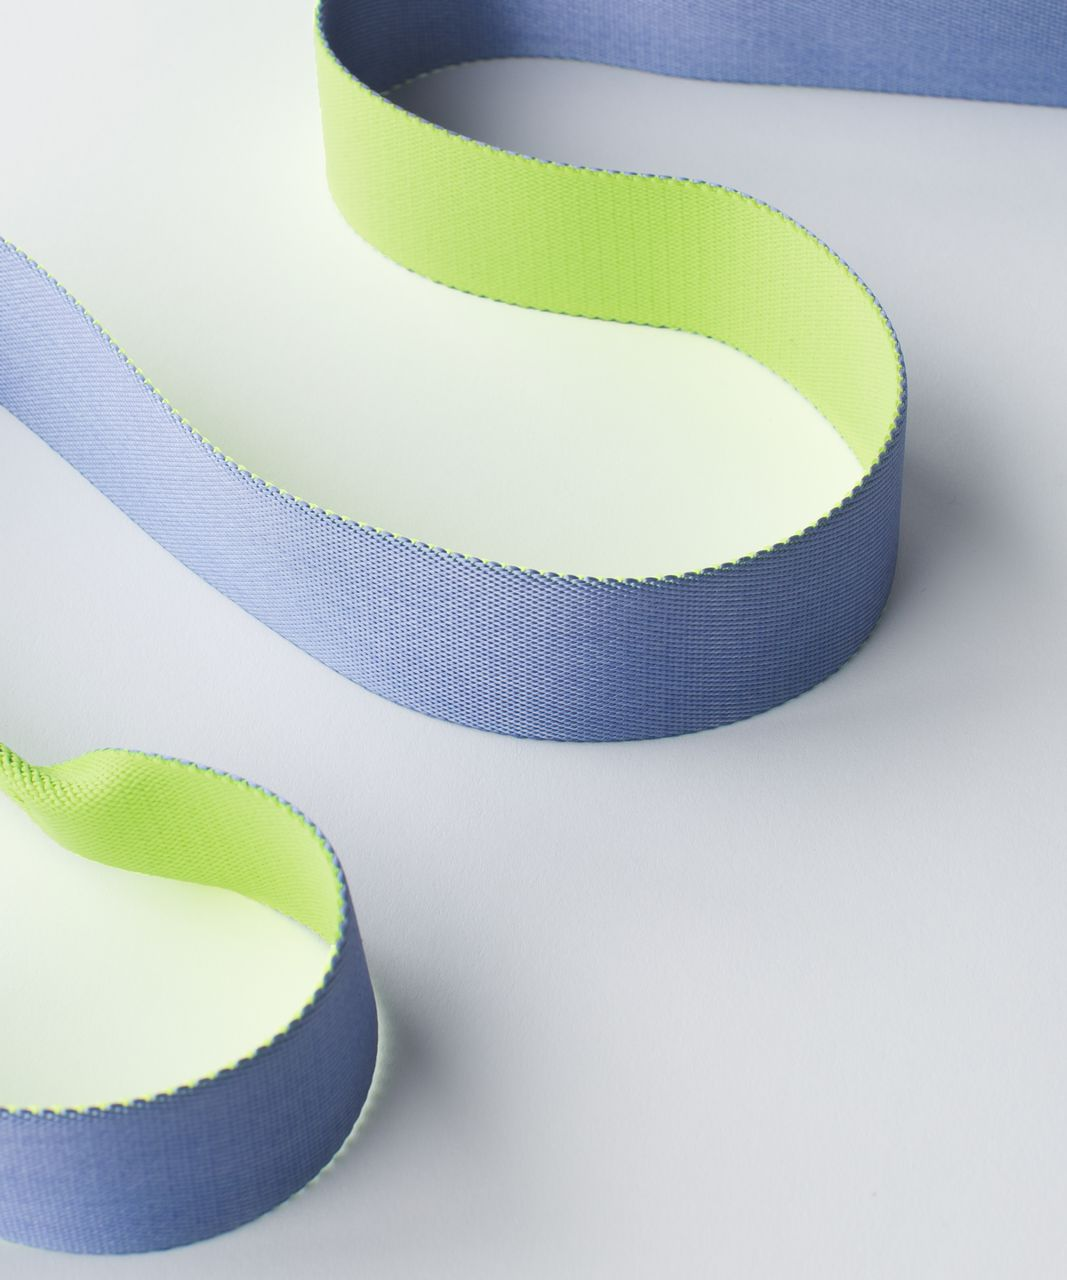 Lululemon Loop It Up Mat Strap - Ray / Lullaby